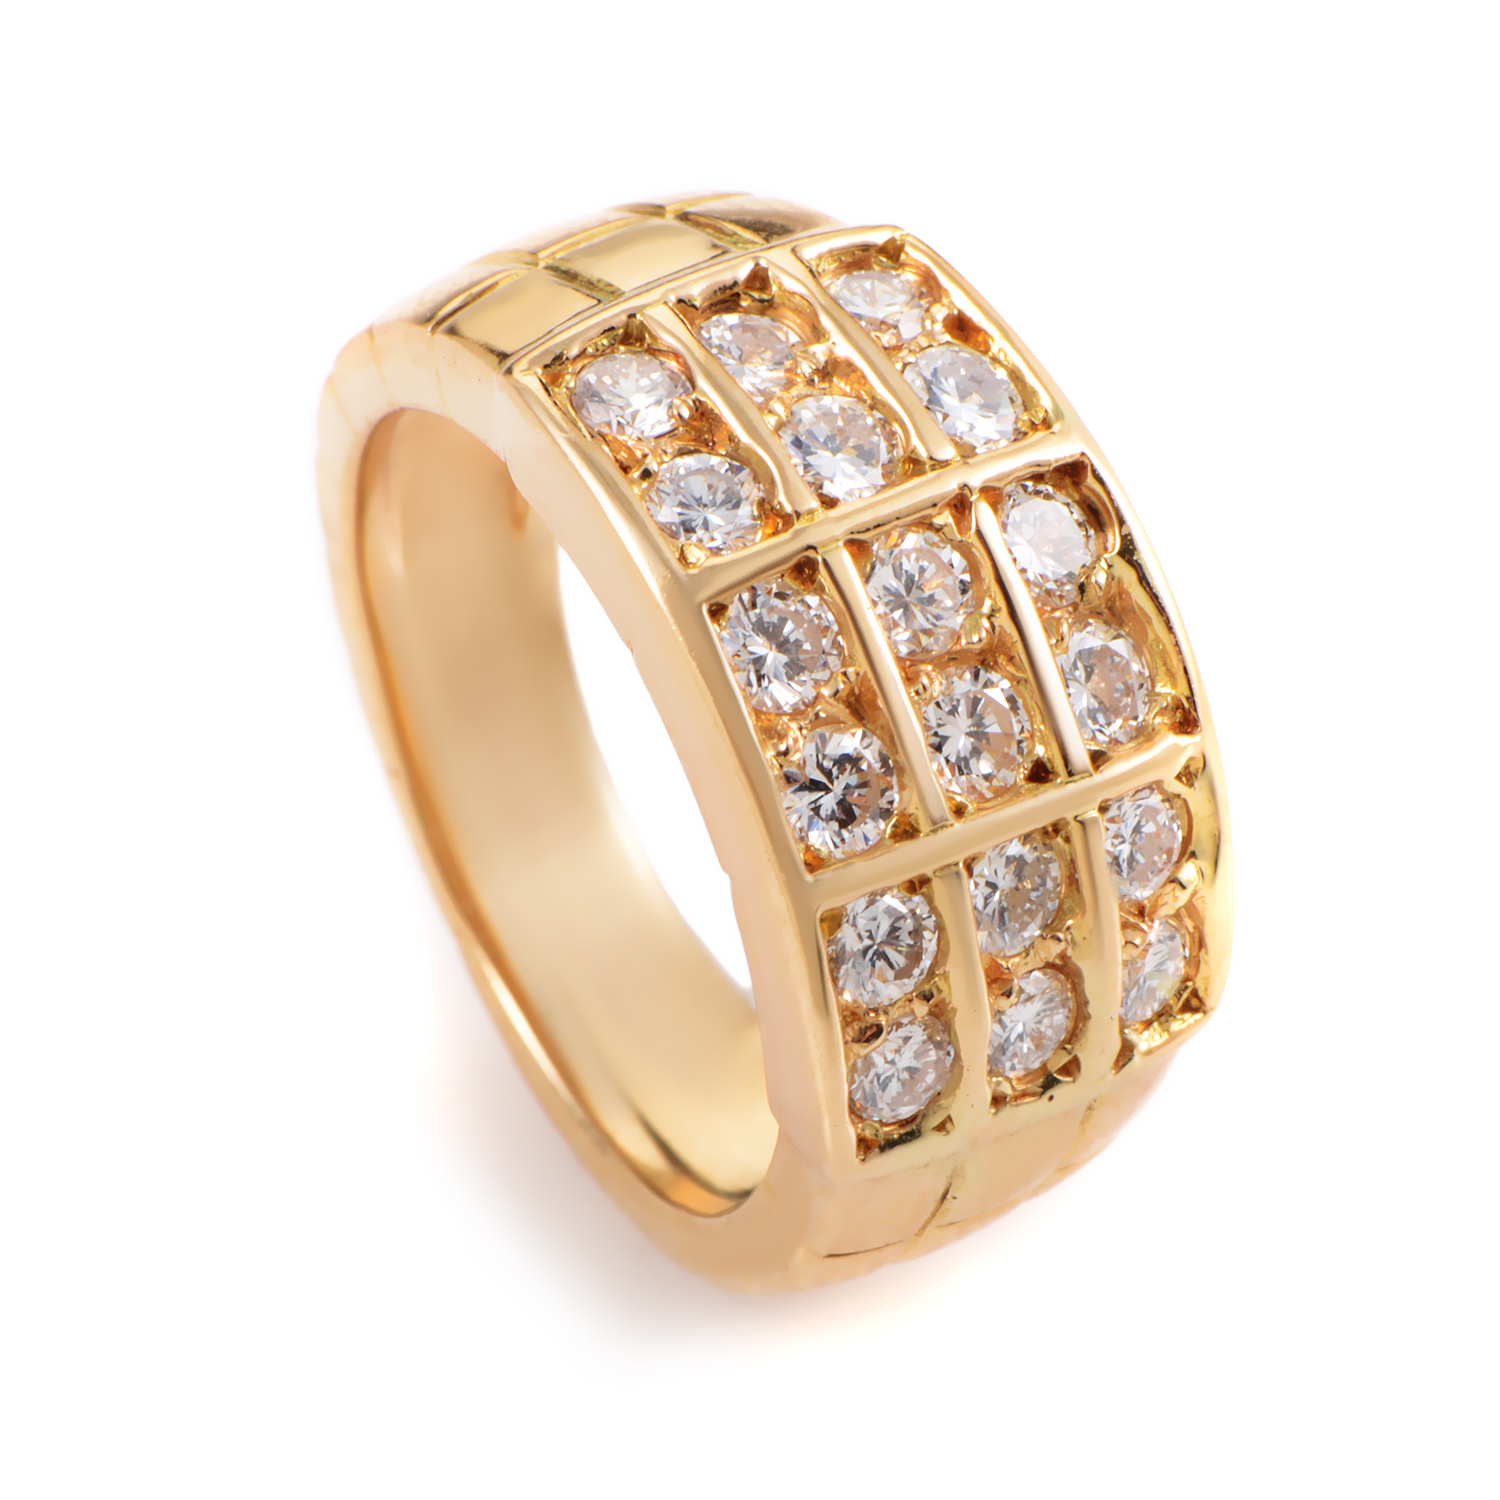 Mauboussin Women's 18K Yellow Gold Diamond Band Ring